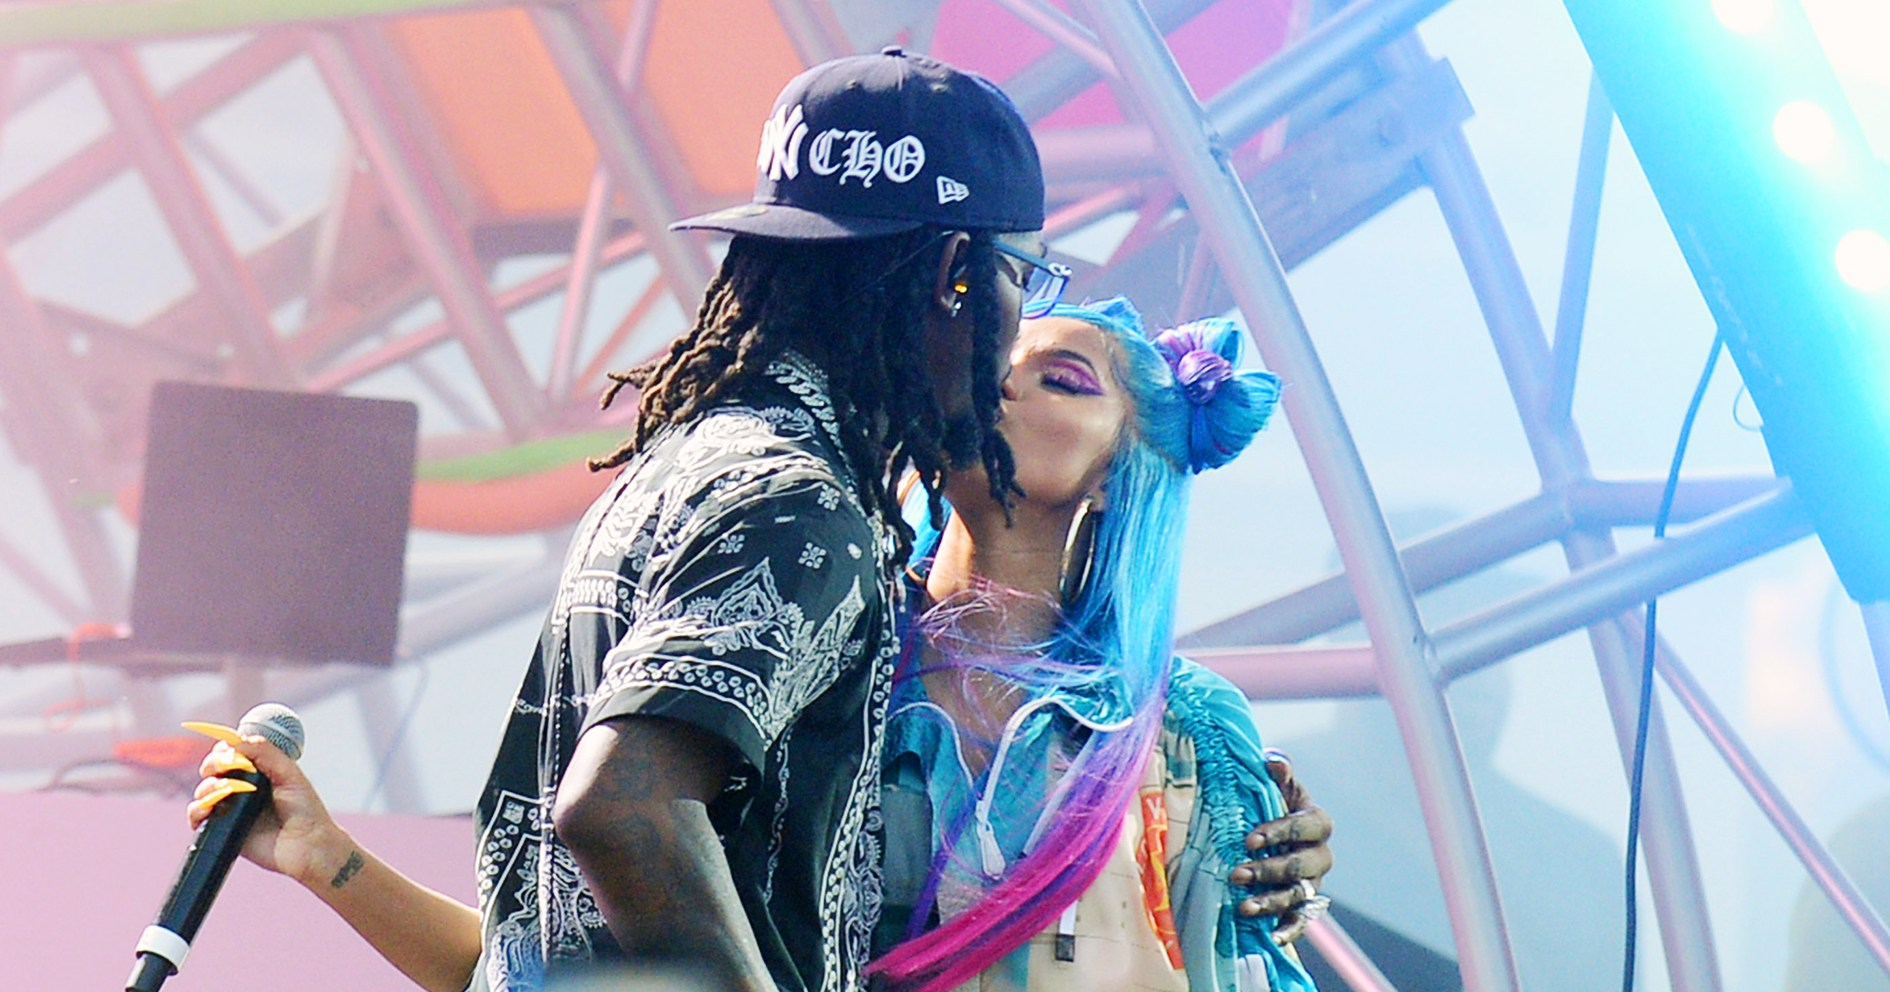 Coachella Love! Cardi B and Offset Pack on the PDA Onstage: Pics